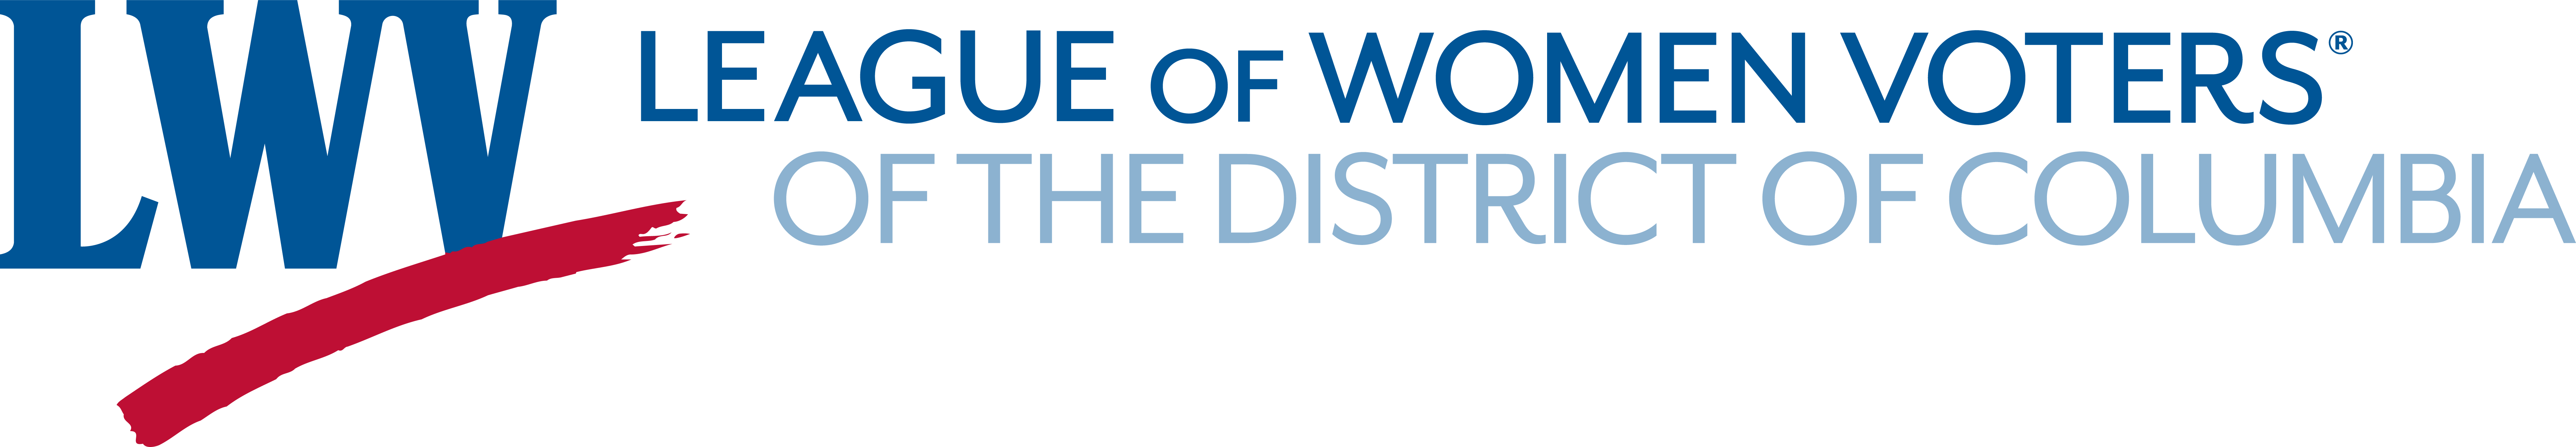 Official LWV Logo of LWV of District of Columbia